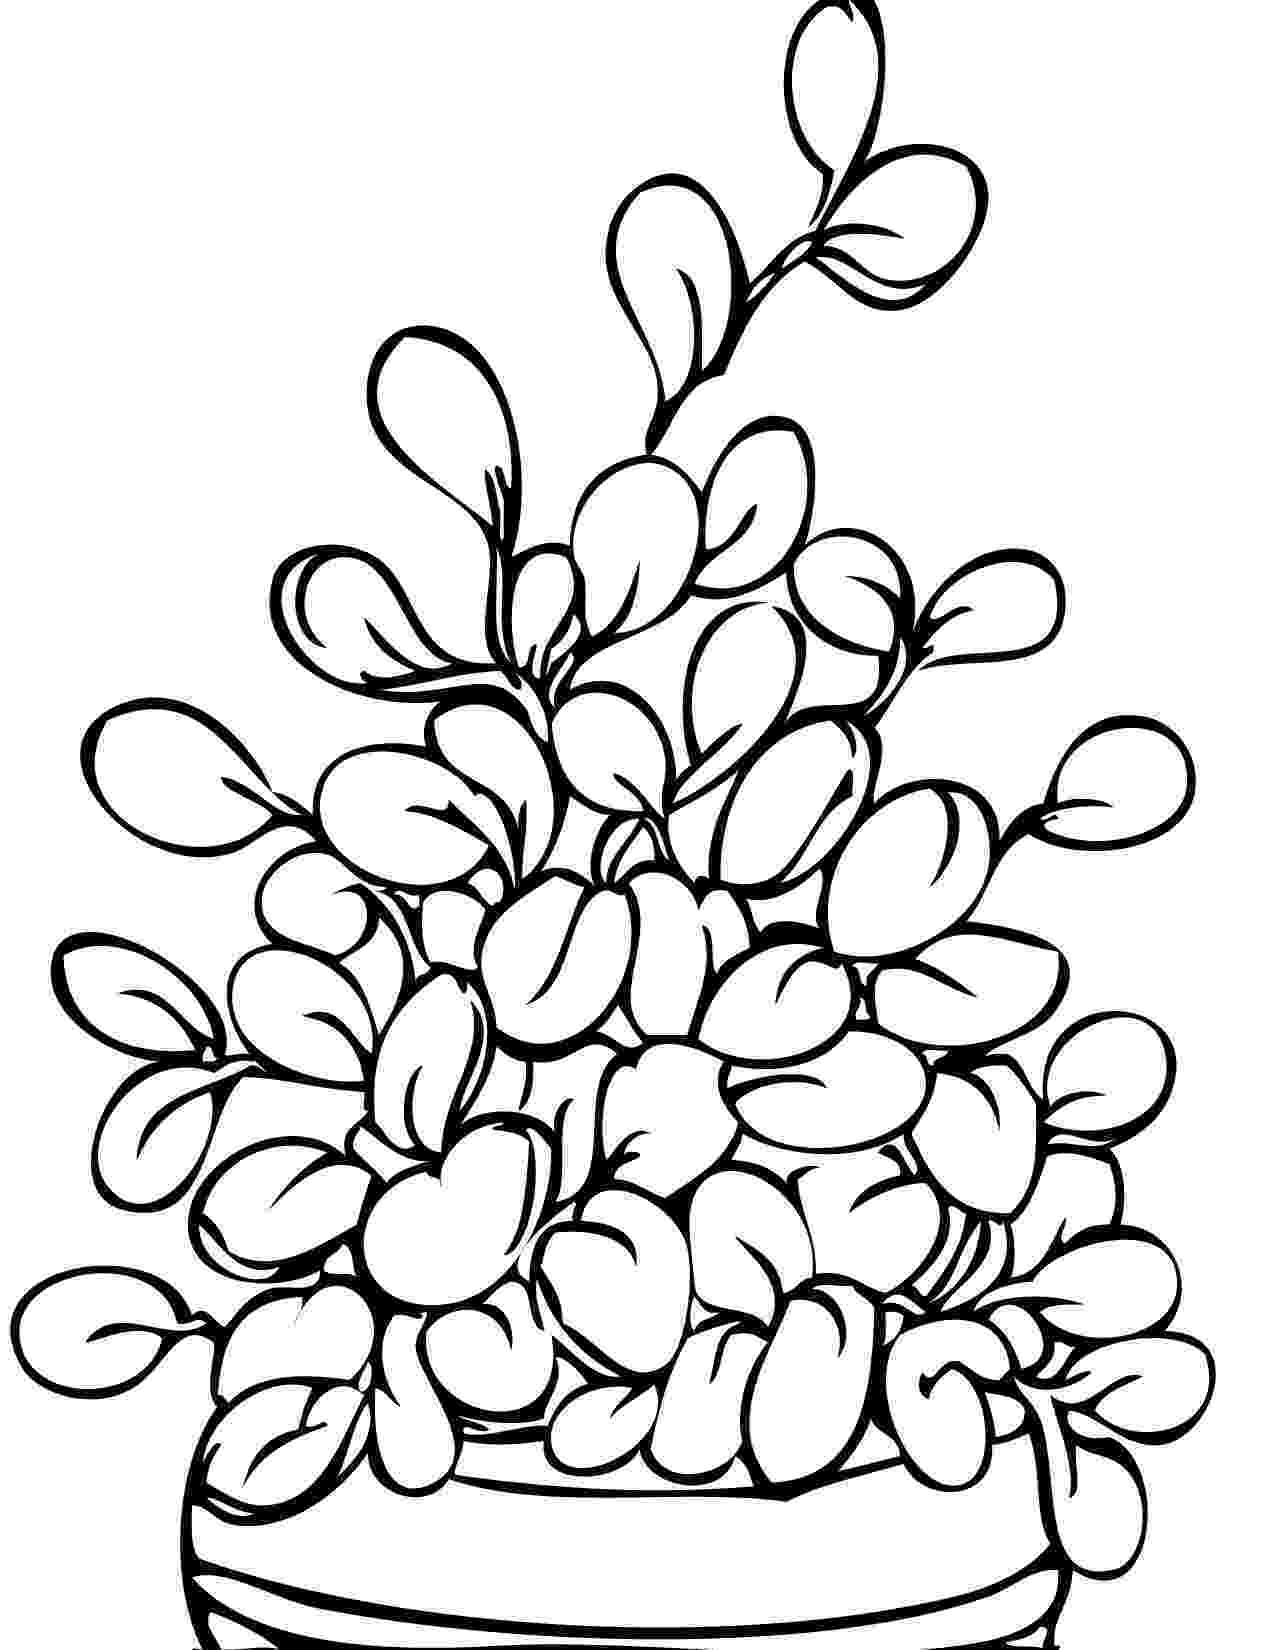 colouring pictures of plants plant coloring pages to download and print for free colouring pictures plants of